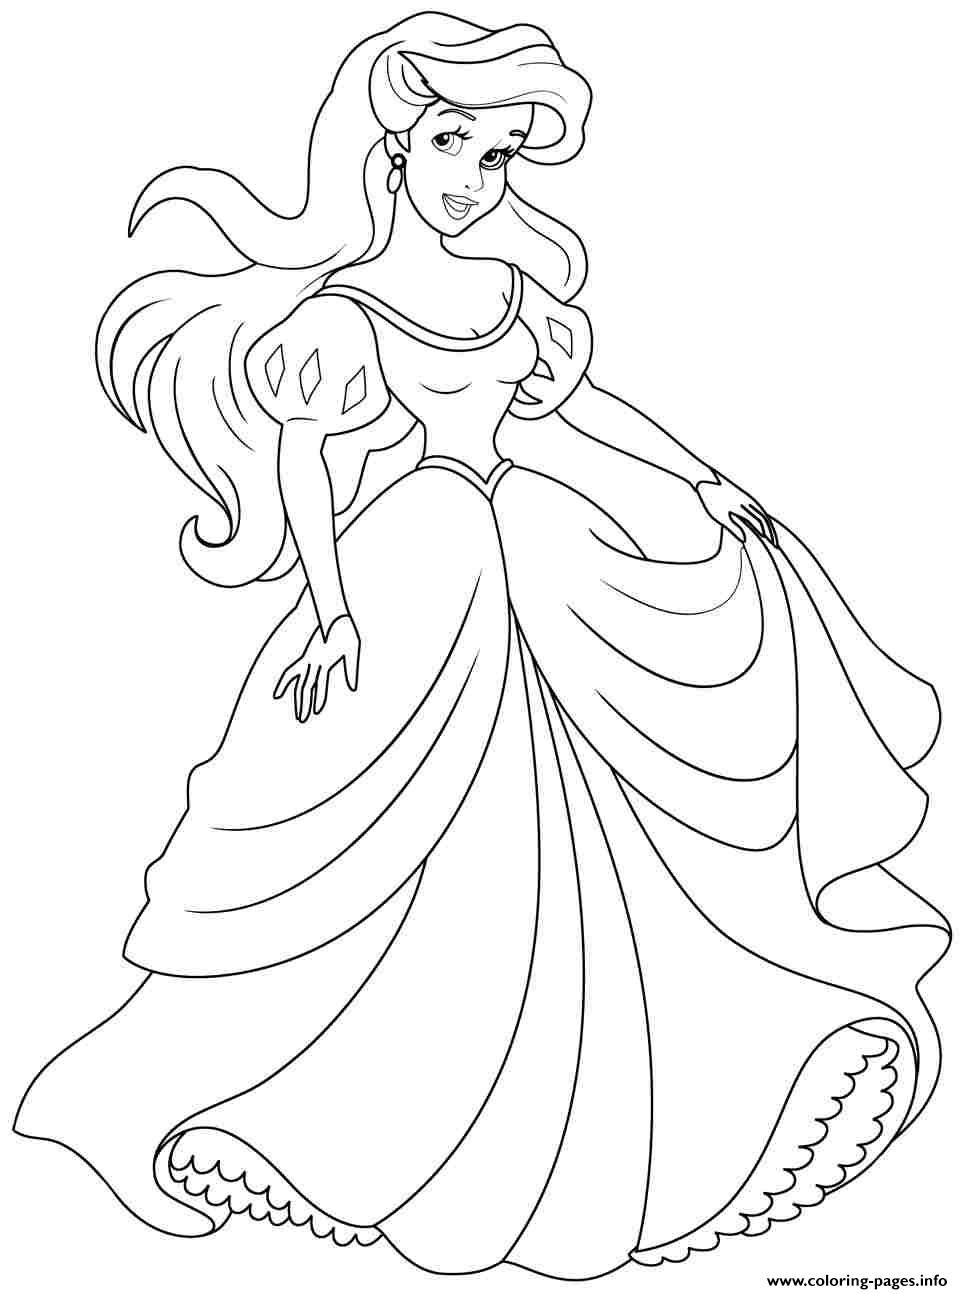 ariel coloring pages free -